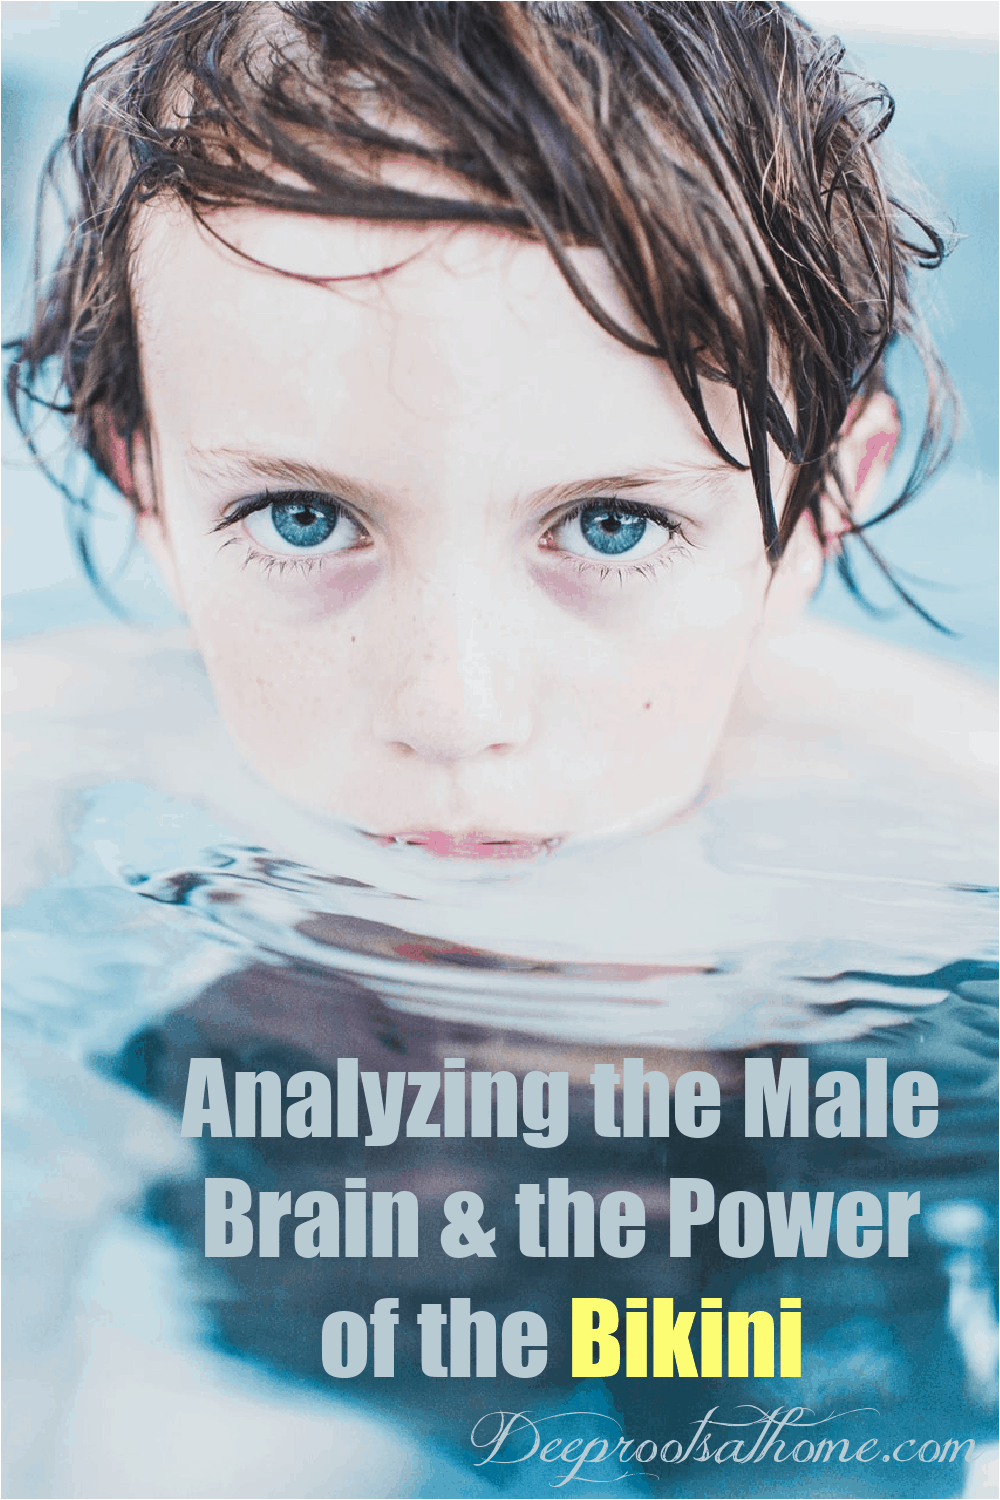 Analyzing the Male Brain and the Power of the Bikini . 5 year old boy in water